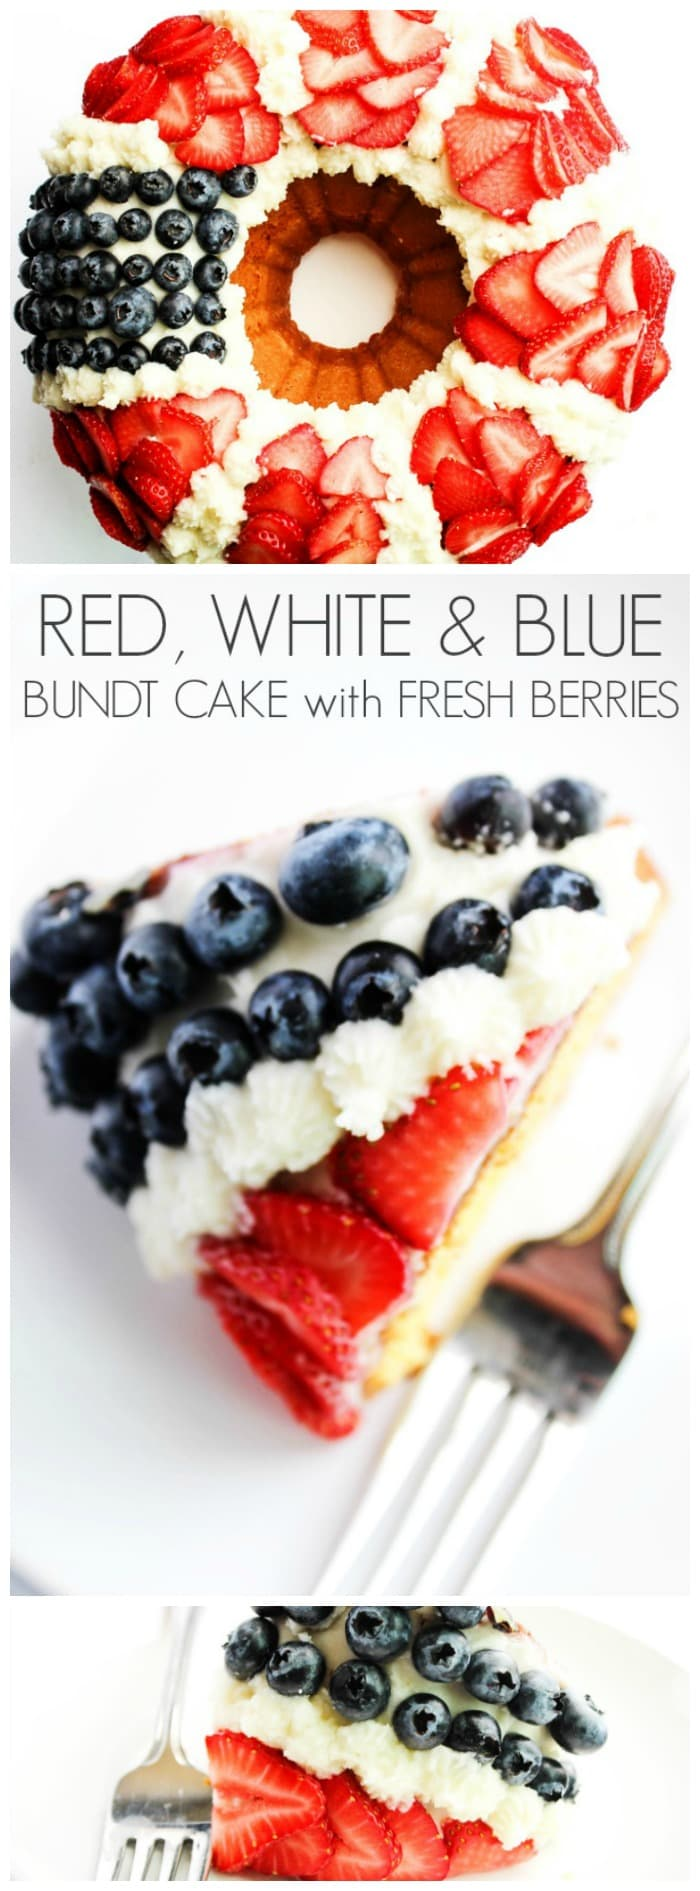 Vanilla Bundt Cake With Strawberries